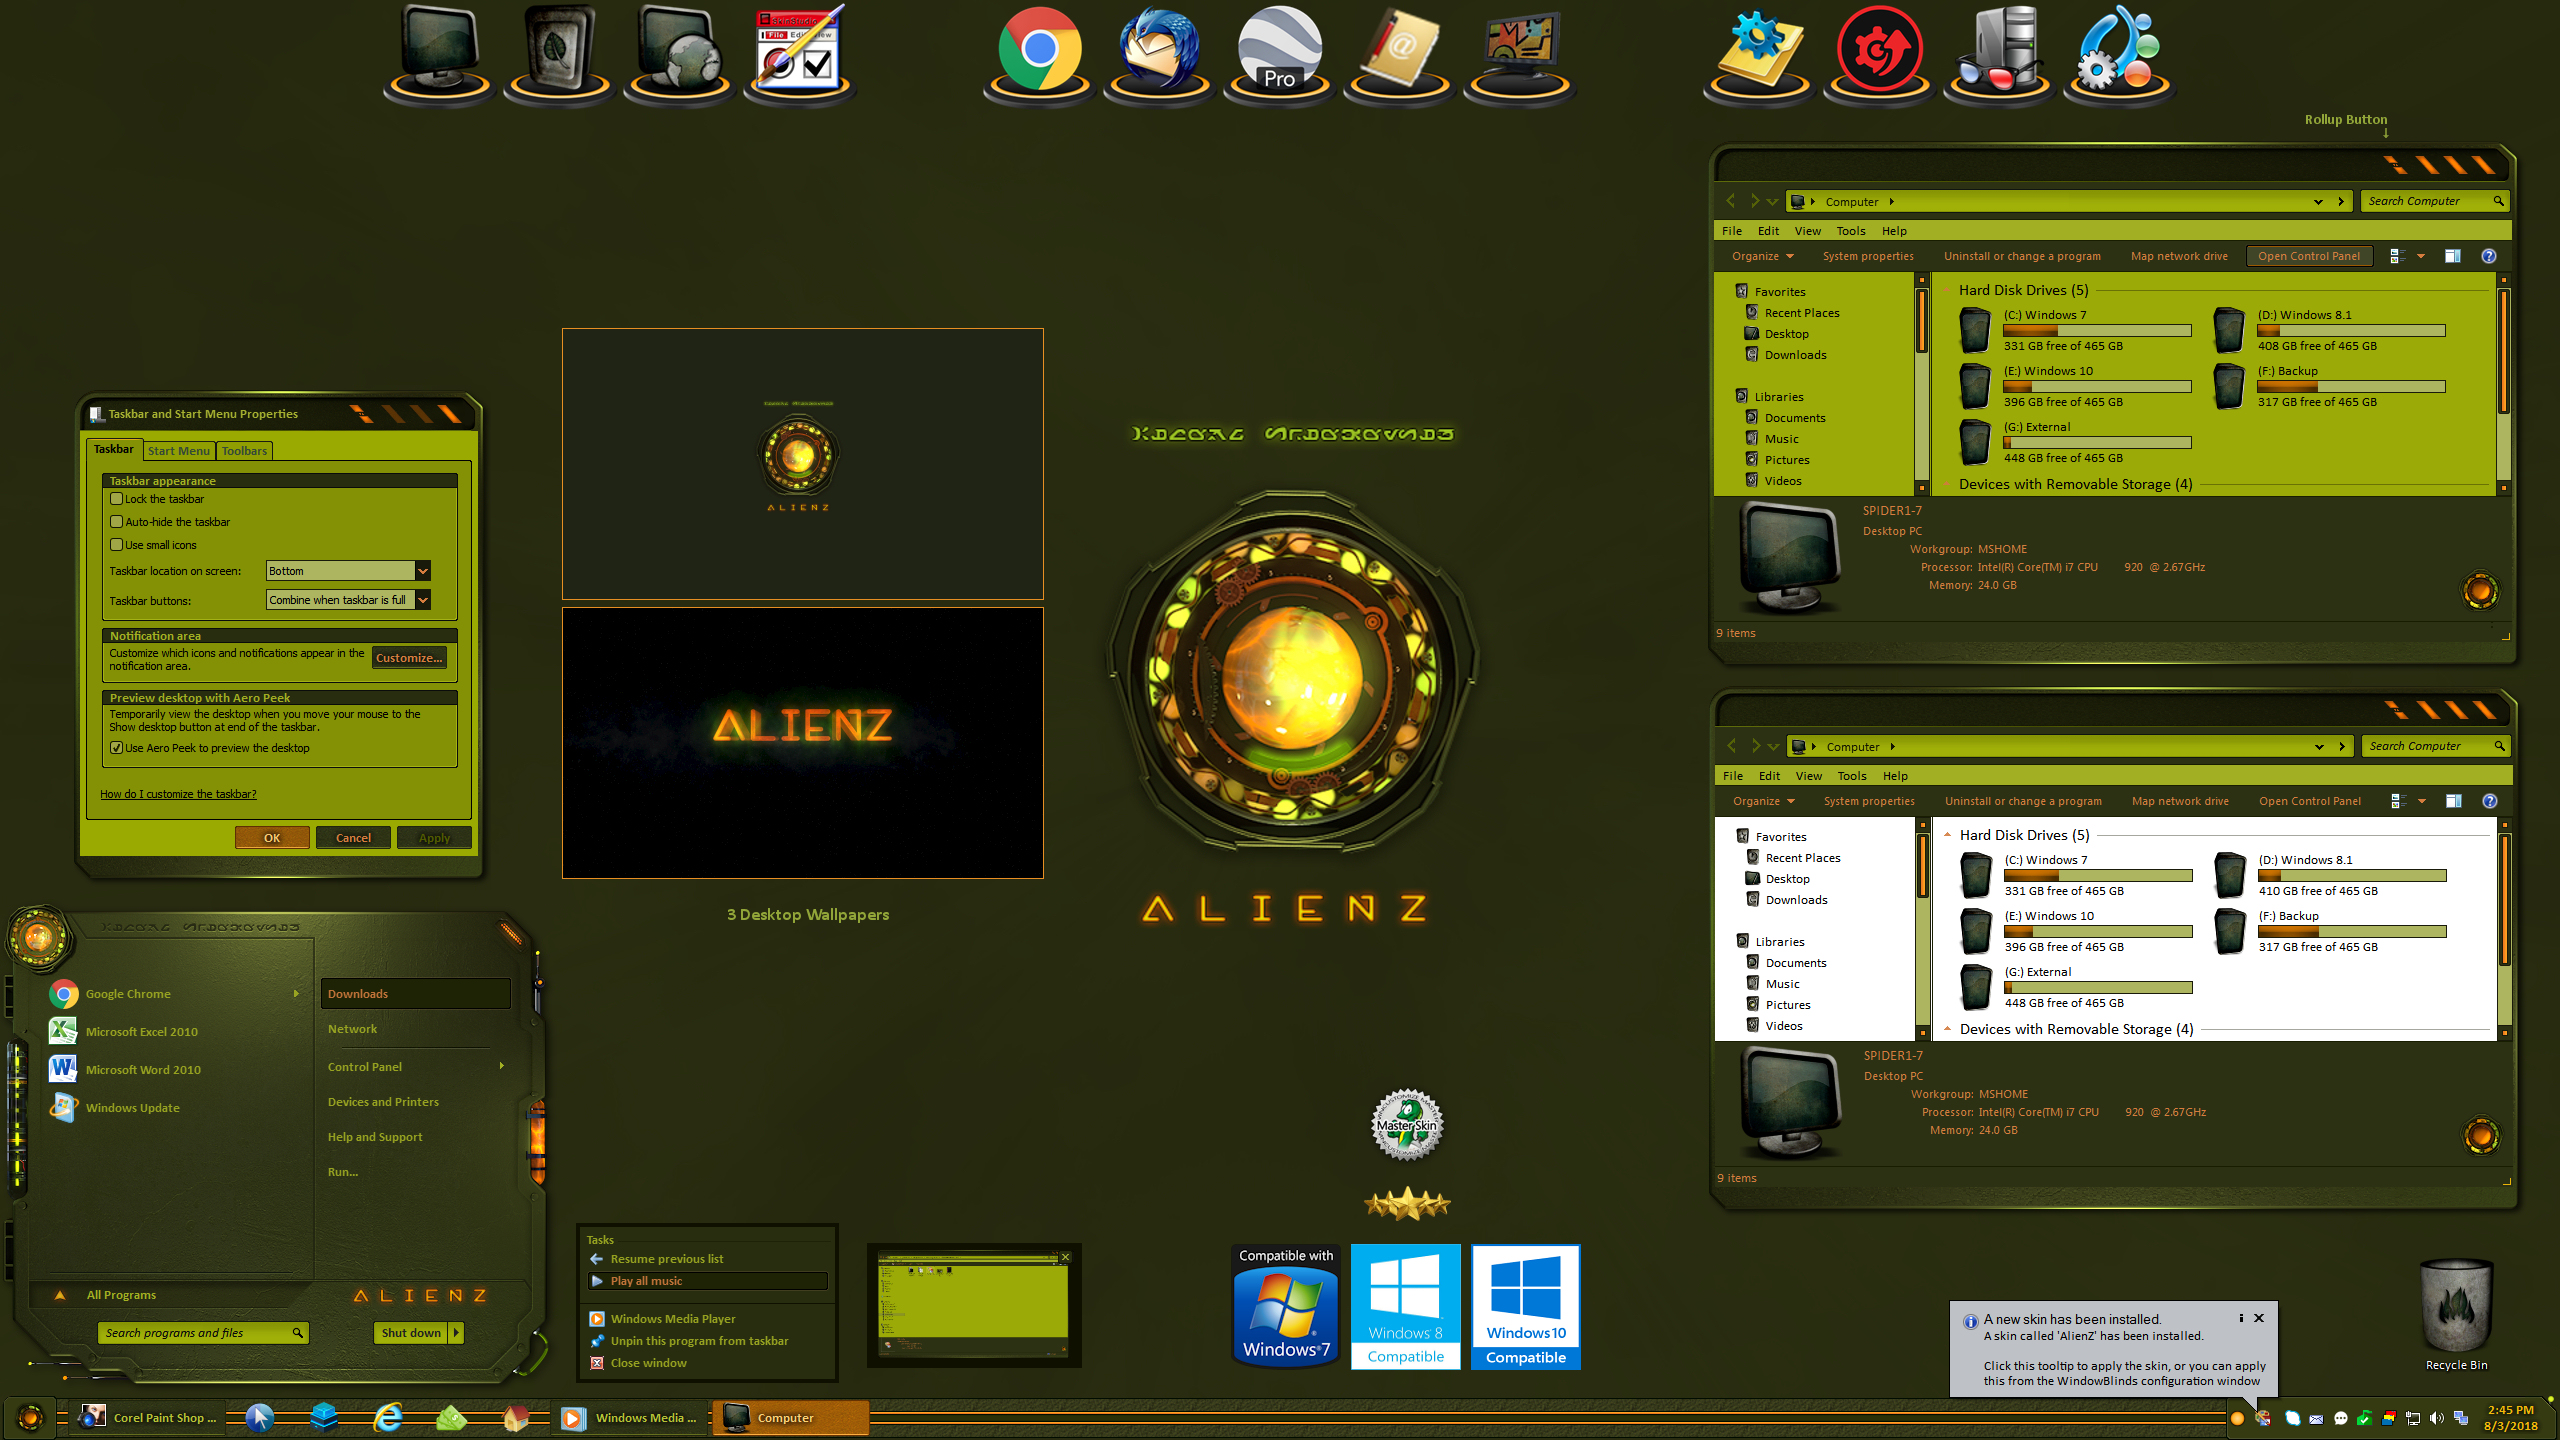 AlienZ for Windowblinds